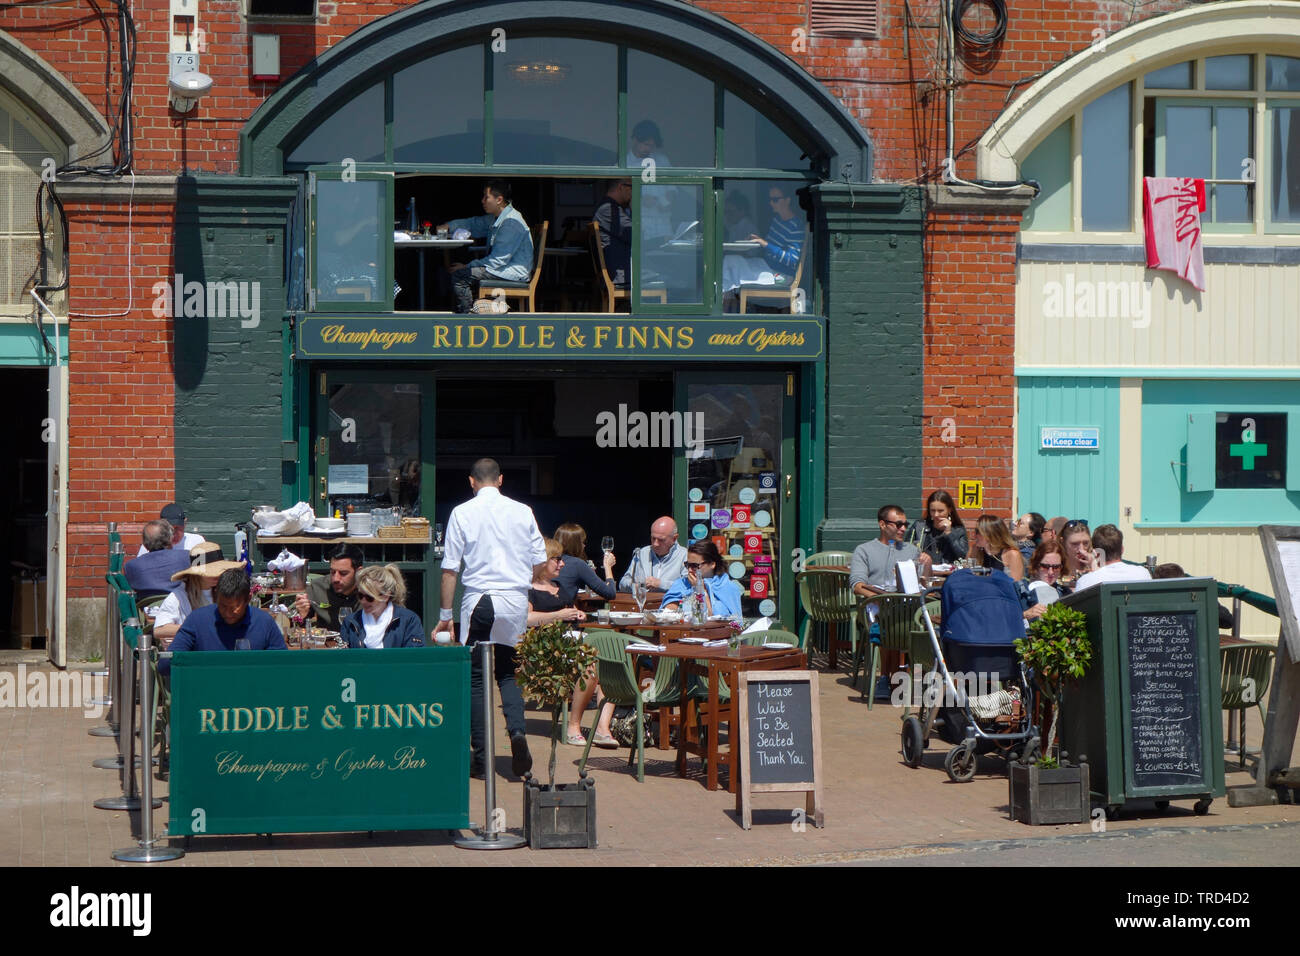 Riddle and Finns Champagne and Oyster Bar on Brighton seafront. Stock Photo